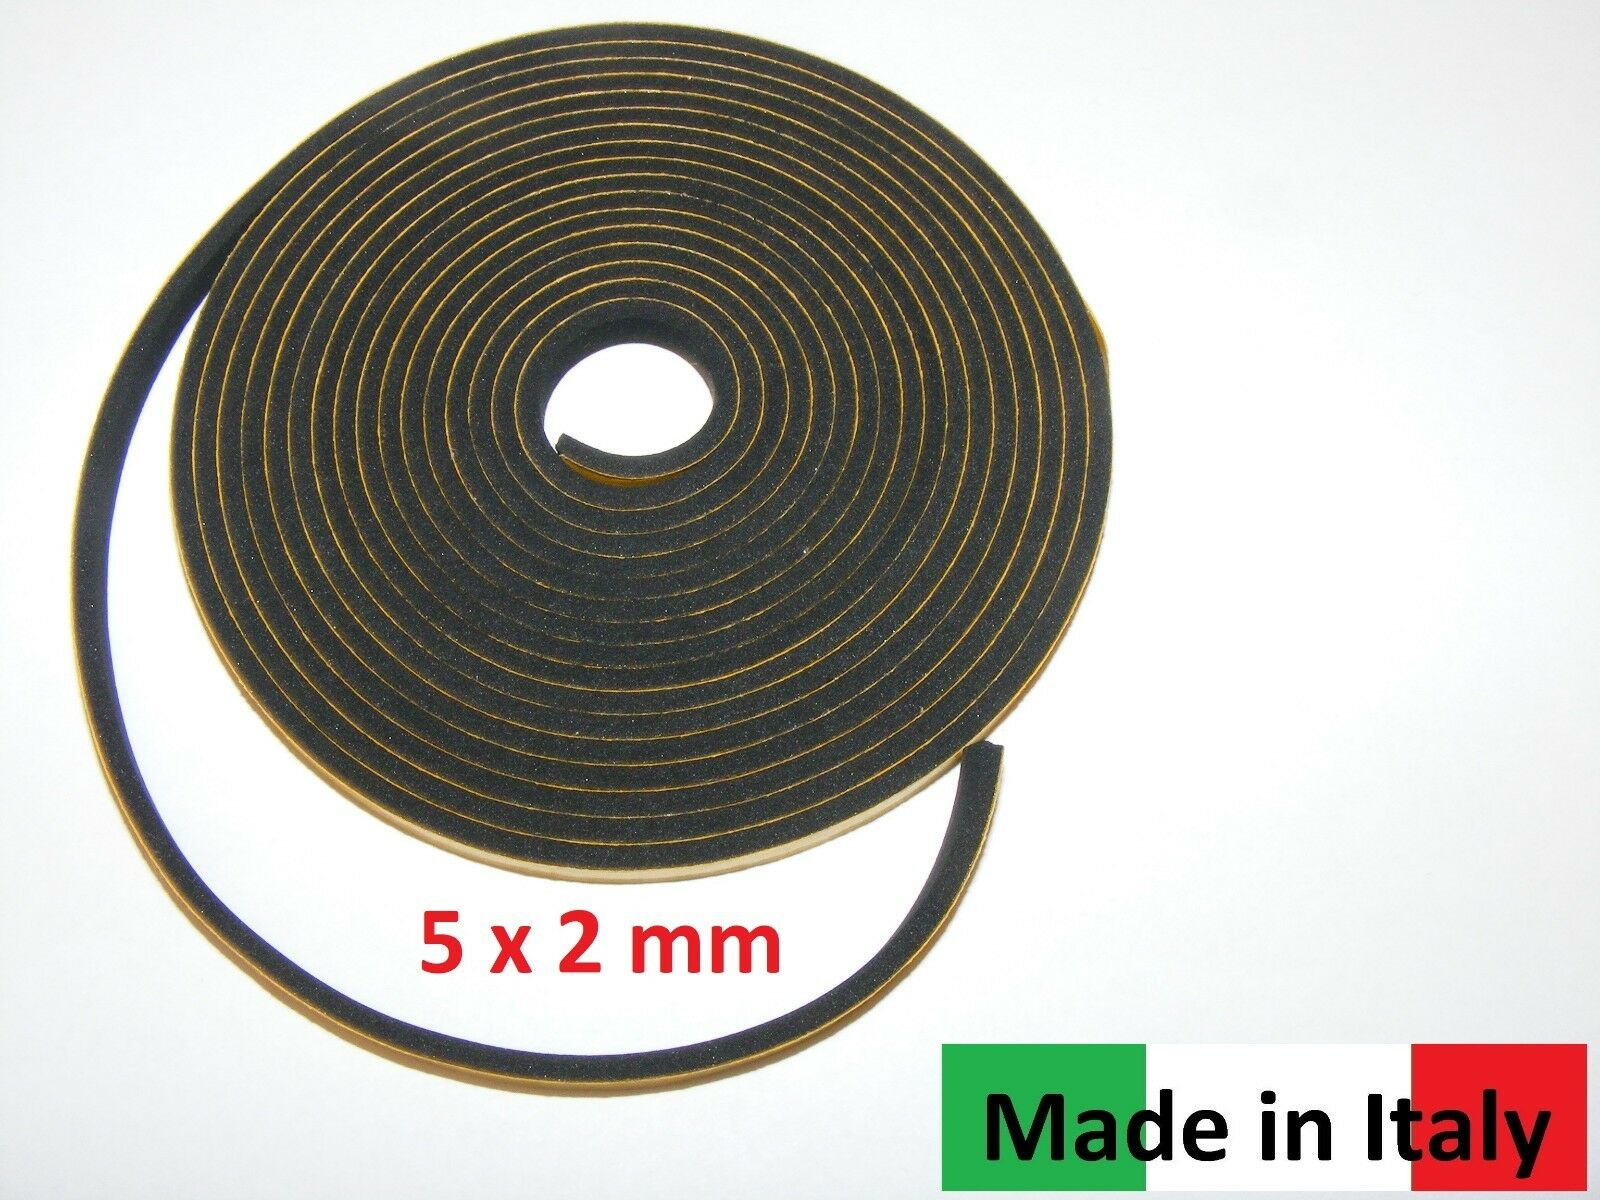 mm 3,4 M Accordion Bellows Gasket self-adhesive// Akkordeon Balgdichtung 5 x 2